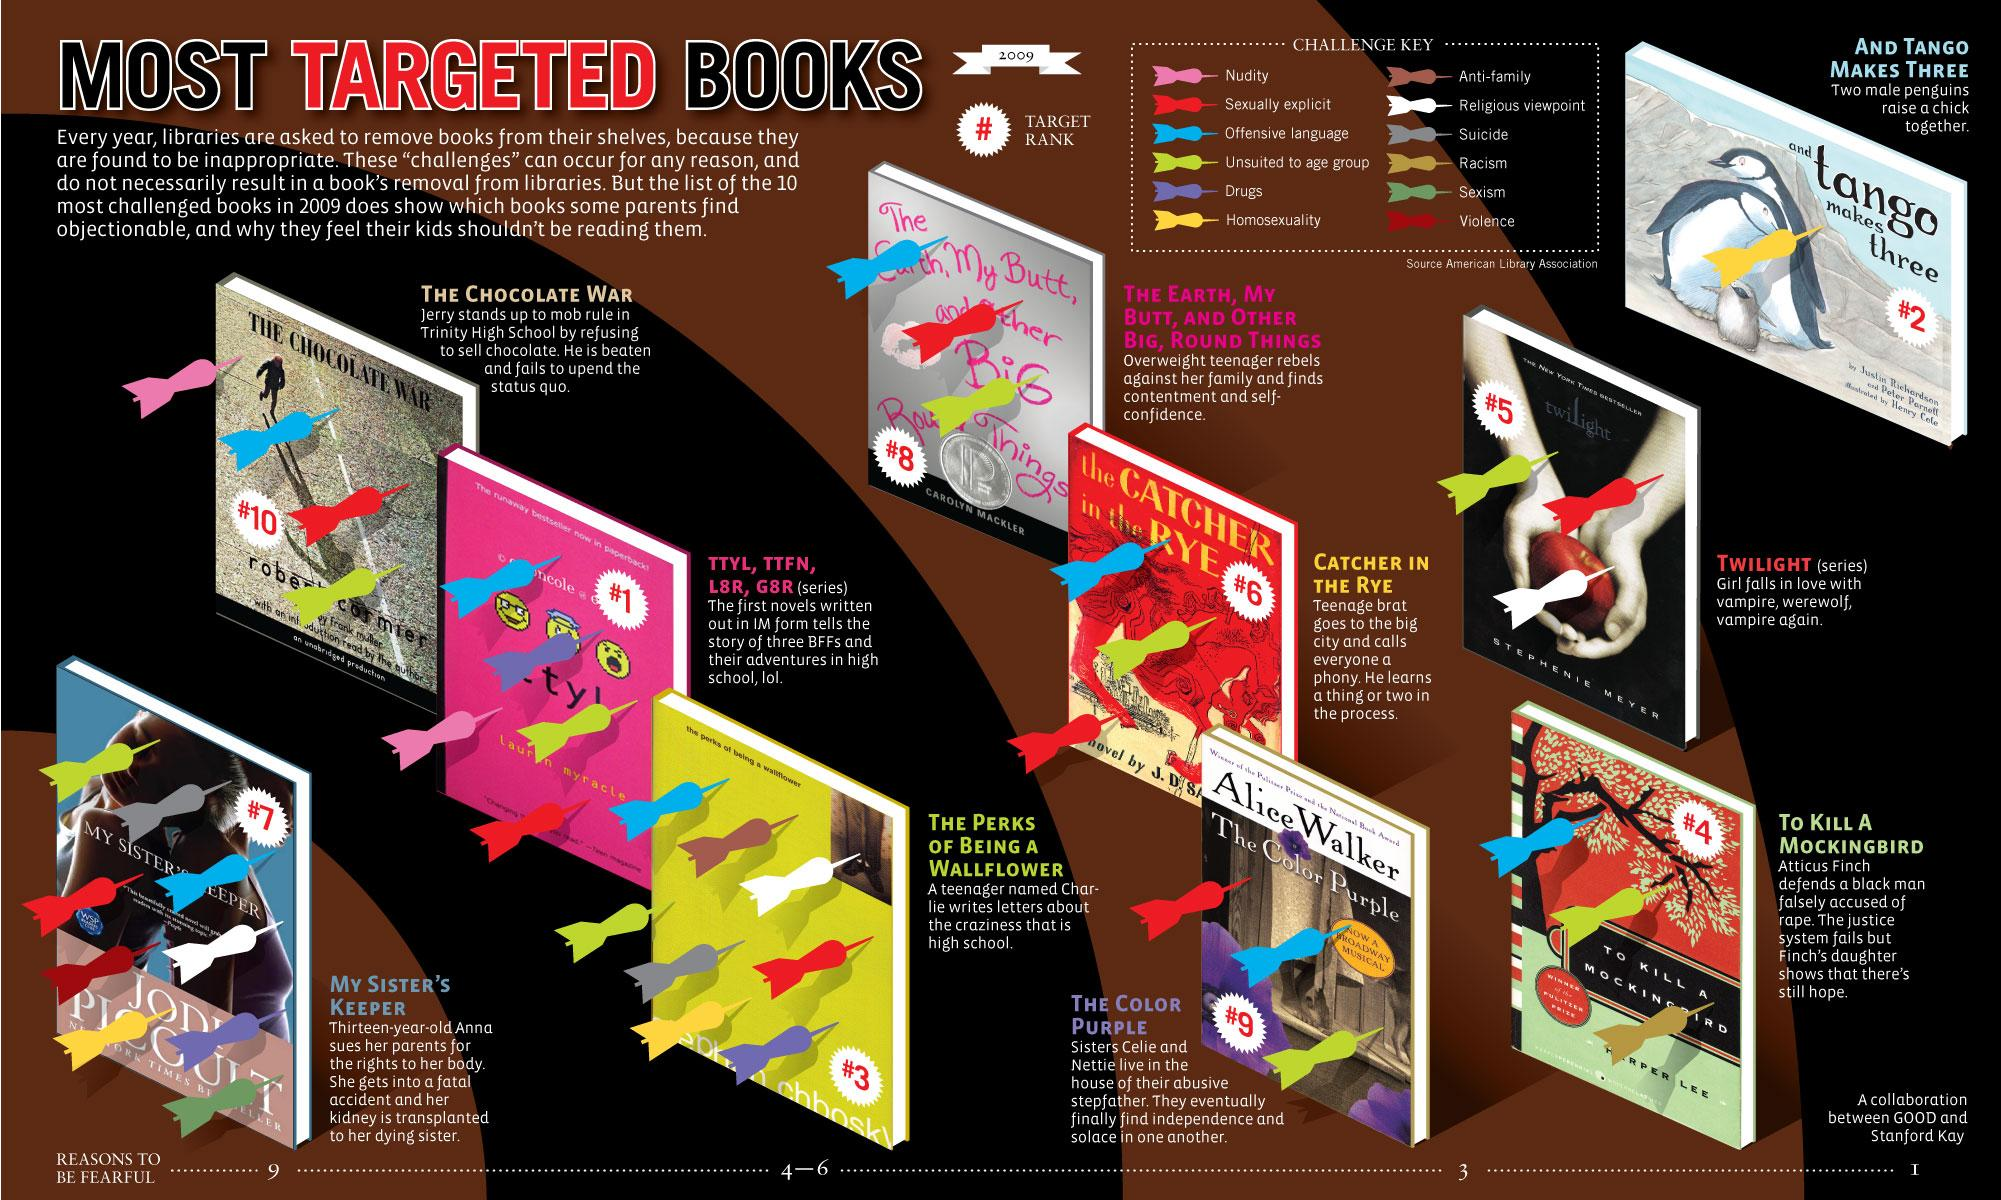 Most Targeted Books Infographic